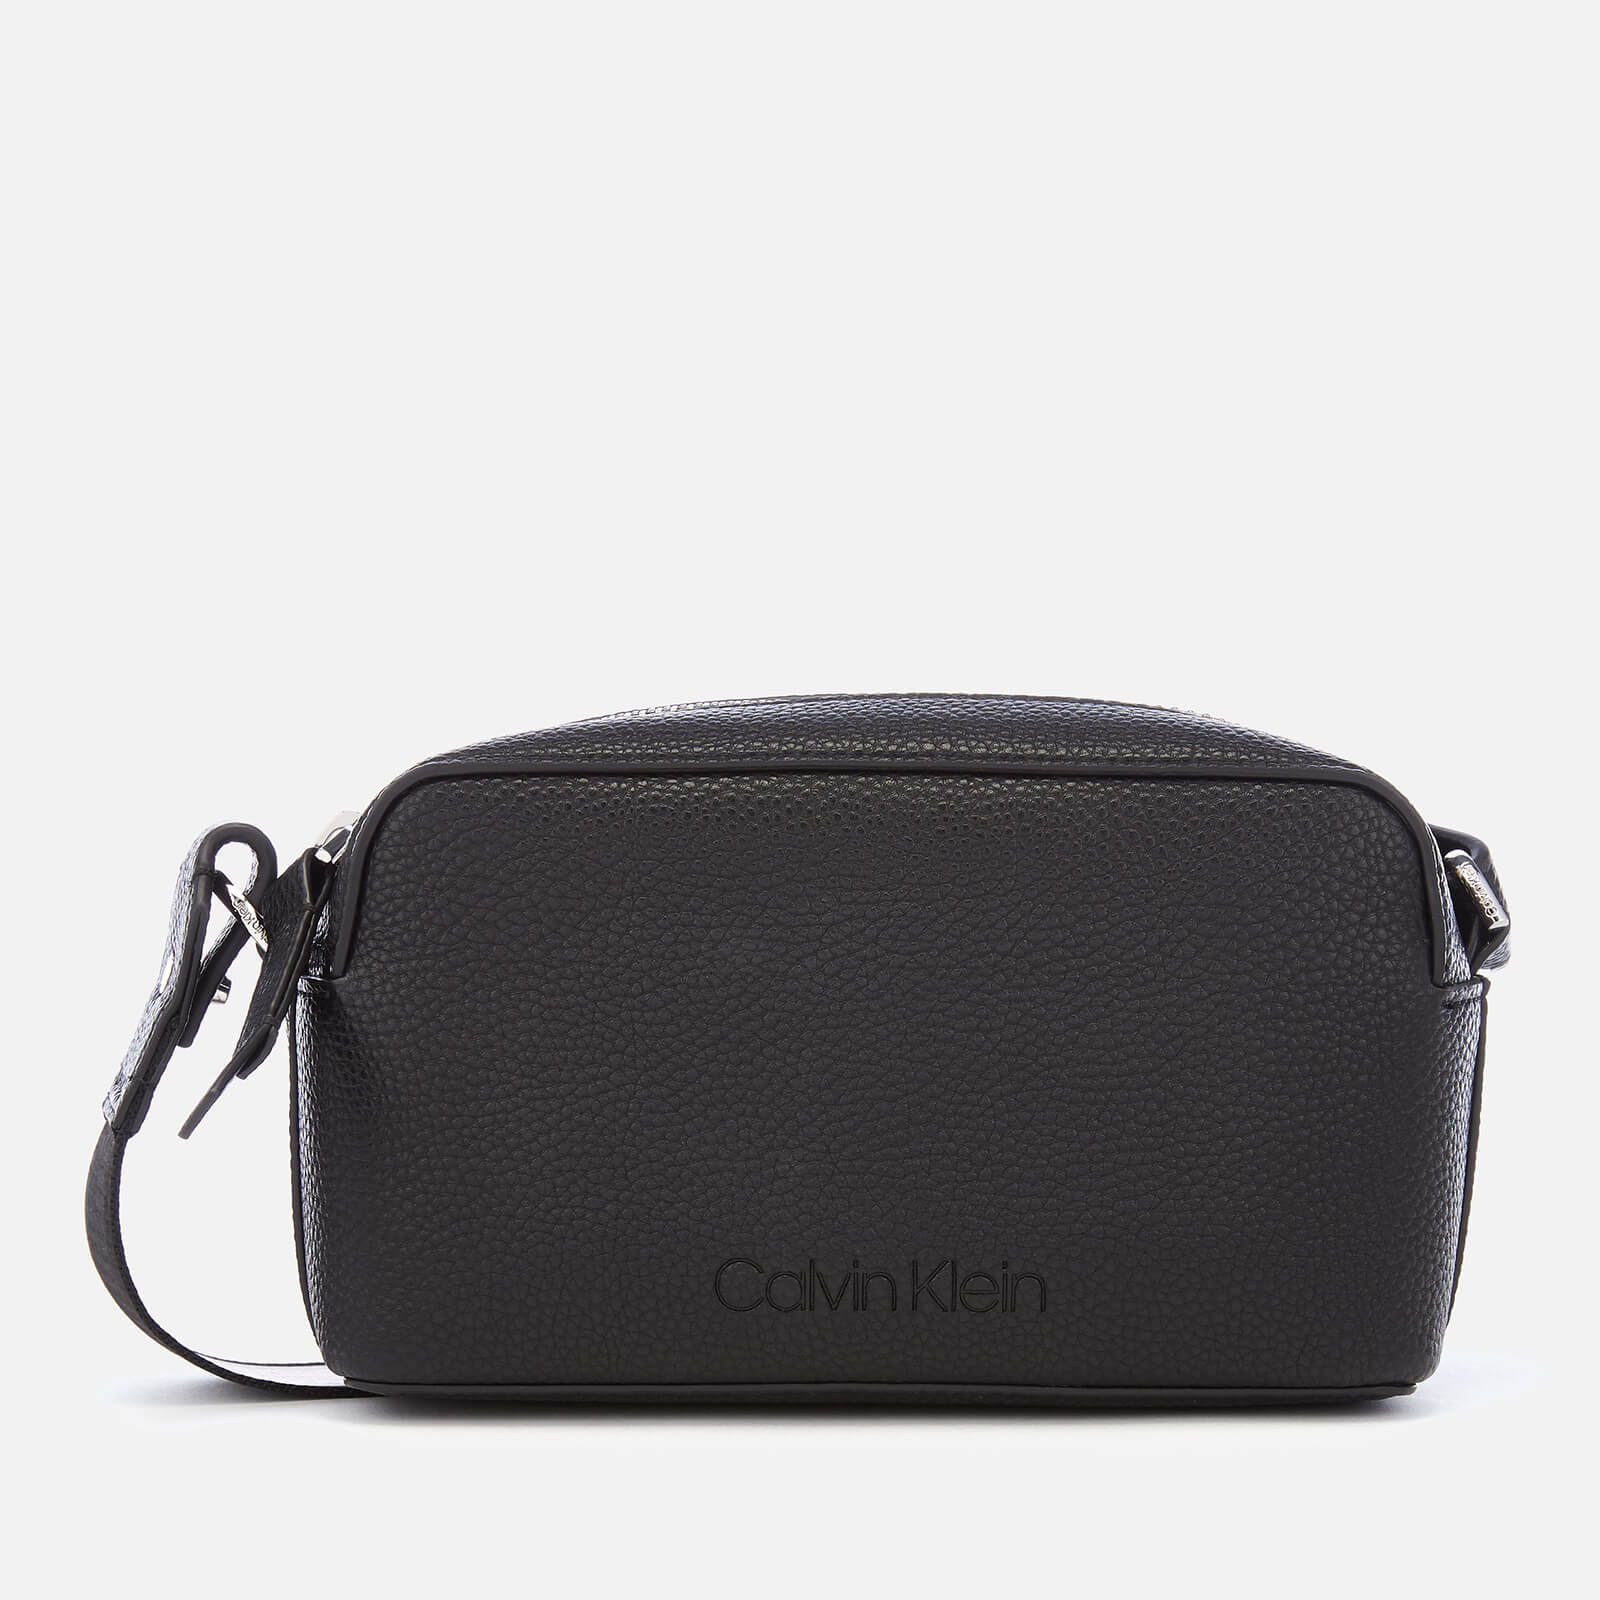 c0ef3d88bcd98c Calvin Klein Women's Race Cross Body Bag - Black